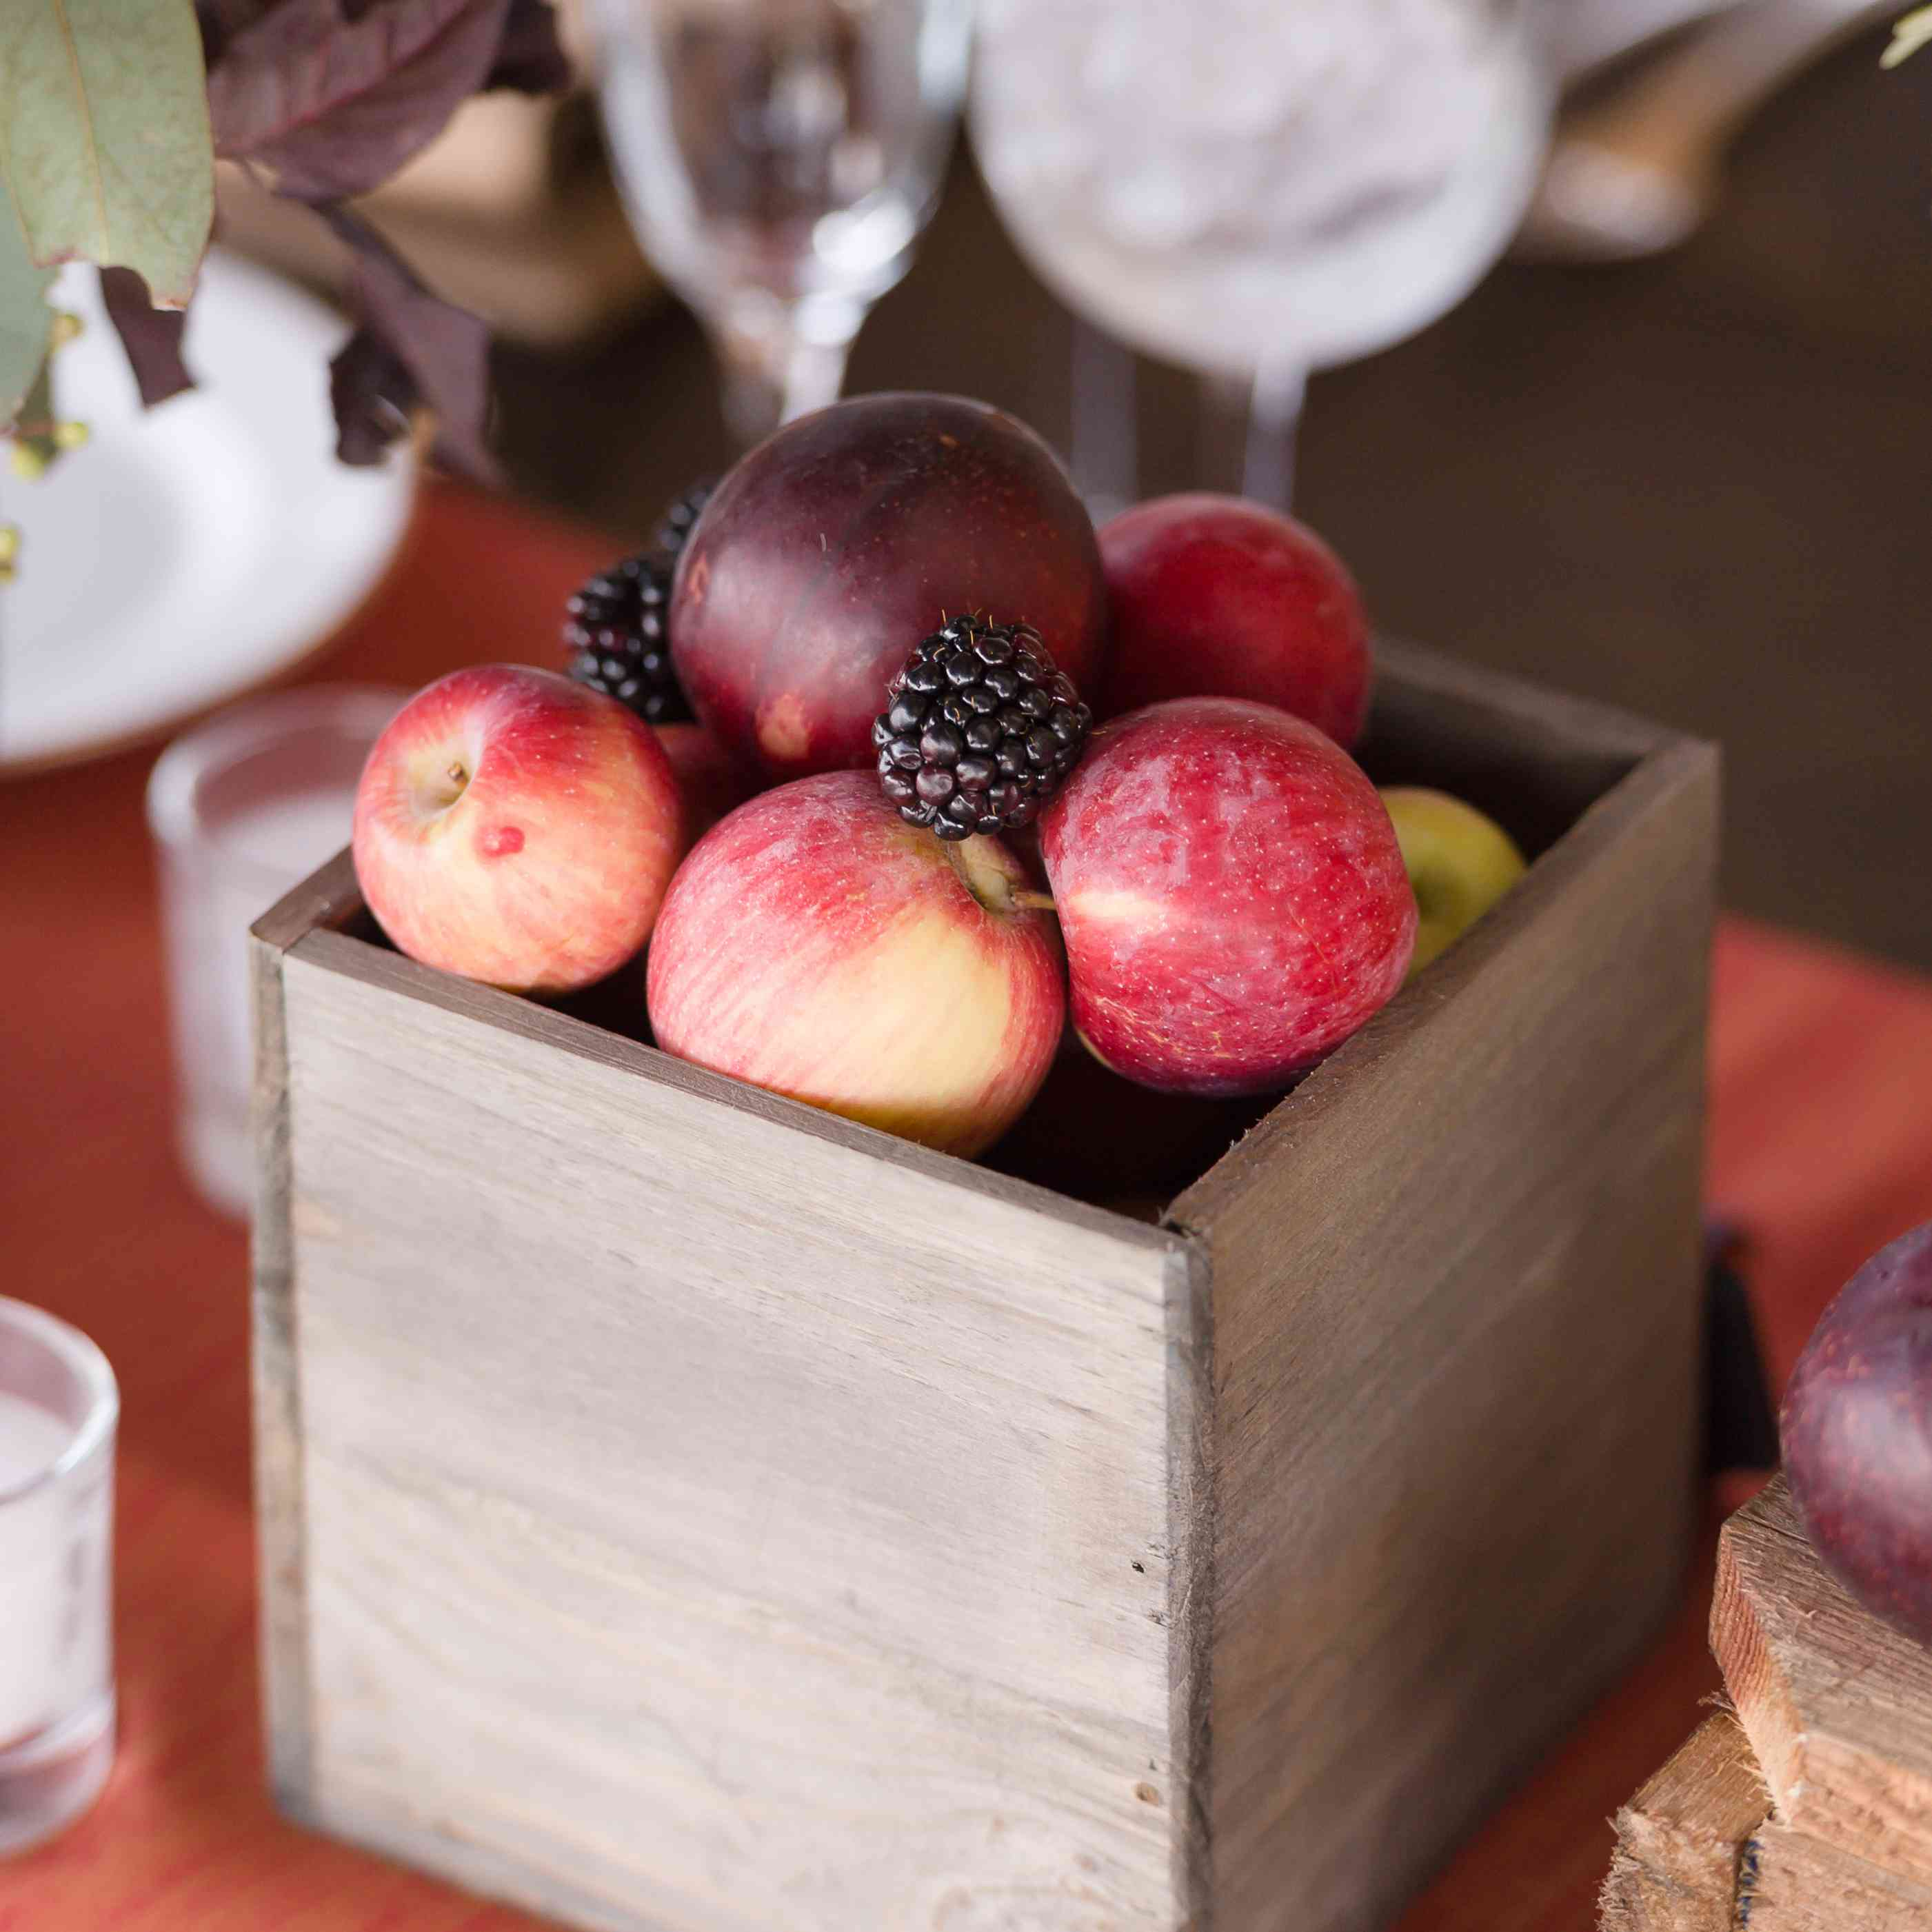 Apples and blackberries in a wooden centerpiece